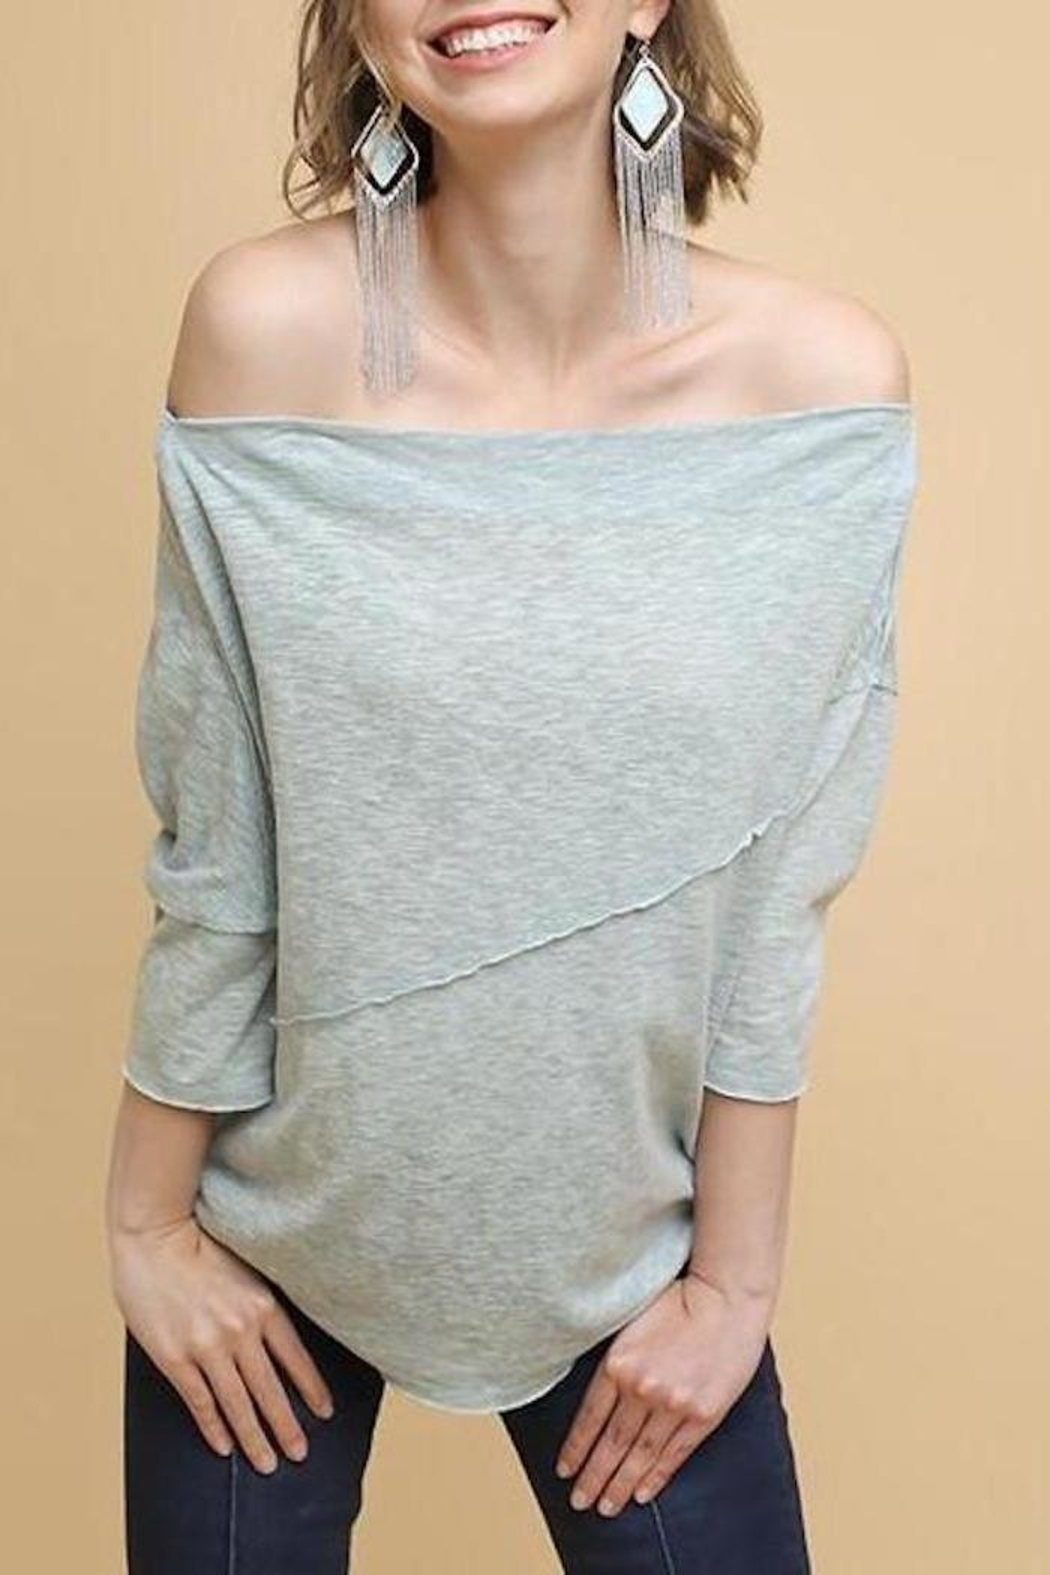 d64403ec1ee80 Umgee USA Slouchy Knit Tee from Austin by Sage Threads   Co ...